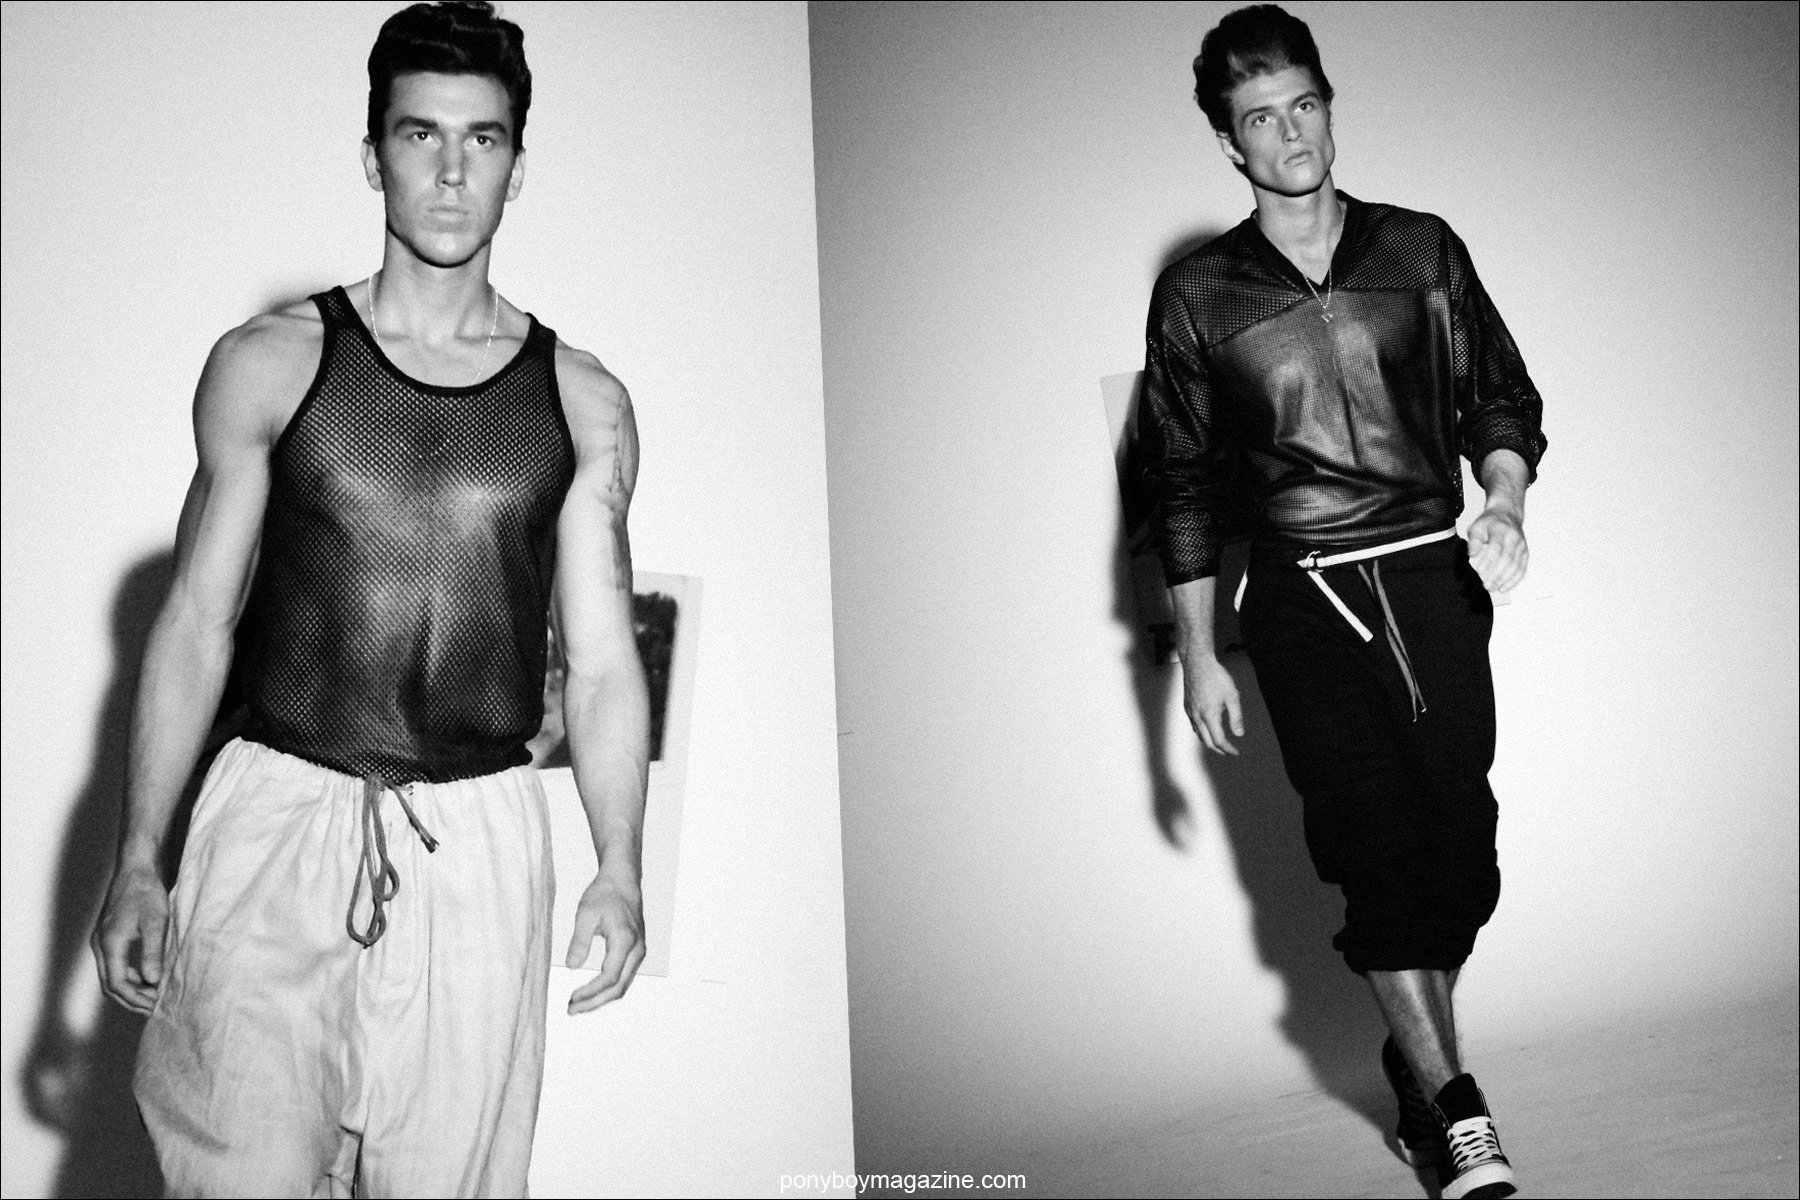 Male models in leather mesh shirts designed by Martin Keehn S/S 2015. Photographed by Alexander Thompson for Ponyboy Magazine.